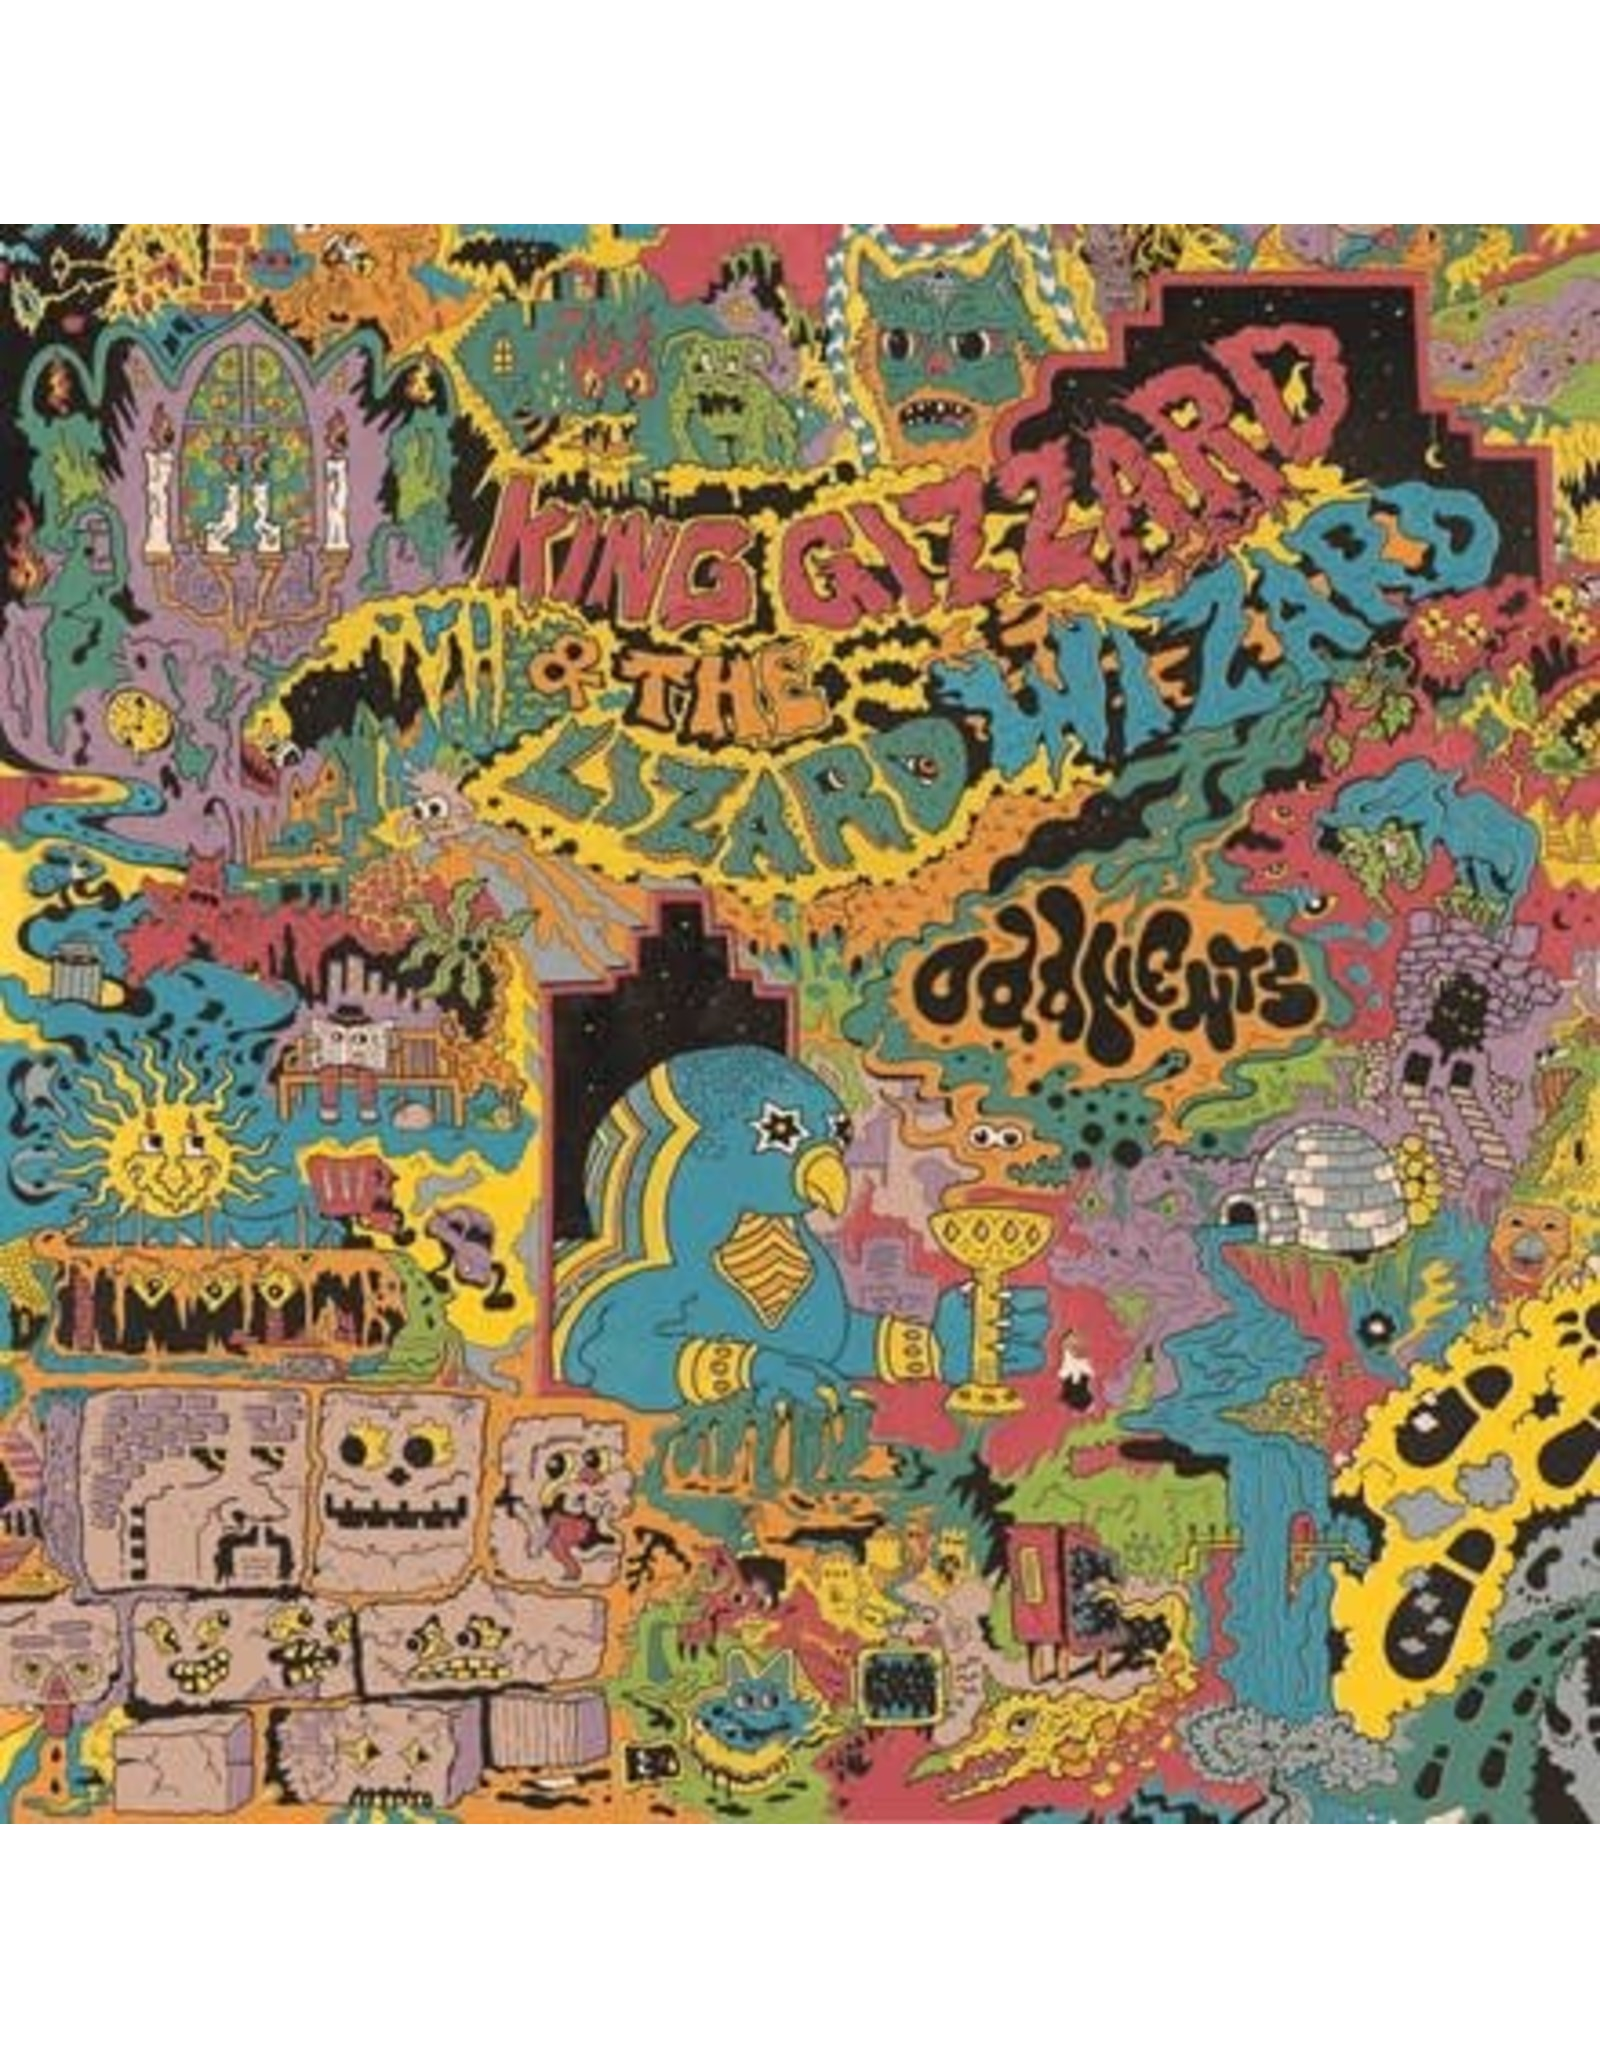 ATO King Gizzard & The Lizard Wizard: Oddments LP